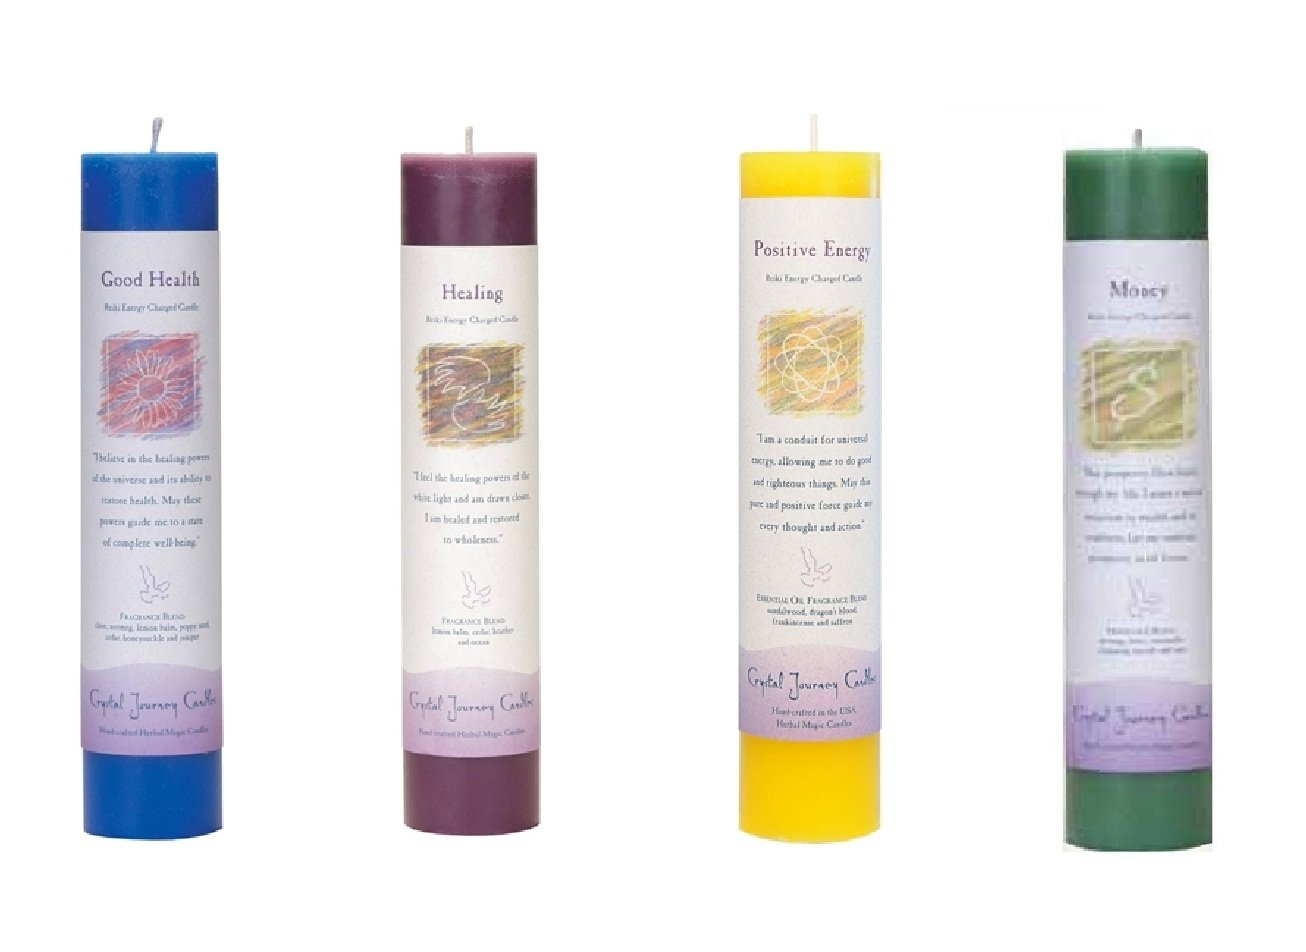 Crystal Journey Reiki Charged Herbal Magic Pillar Candle with Inspirational Labels - Bundle of 4 (Good Health, Healing, Positive Energy, Money) Each 7''x1.5'' handcrafted with lead-free materials